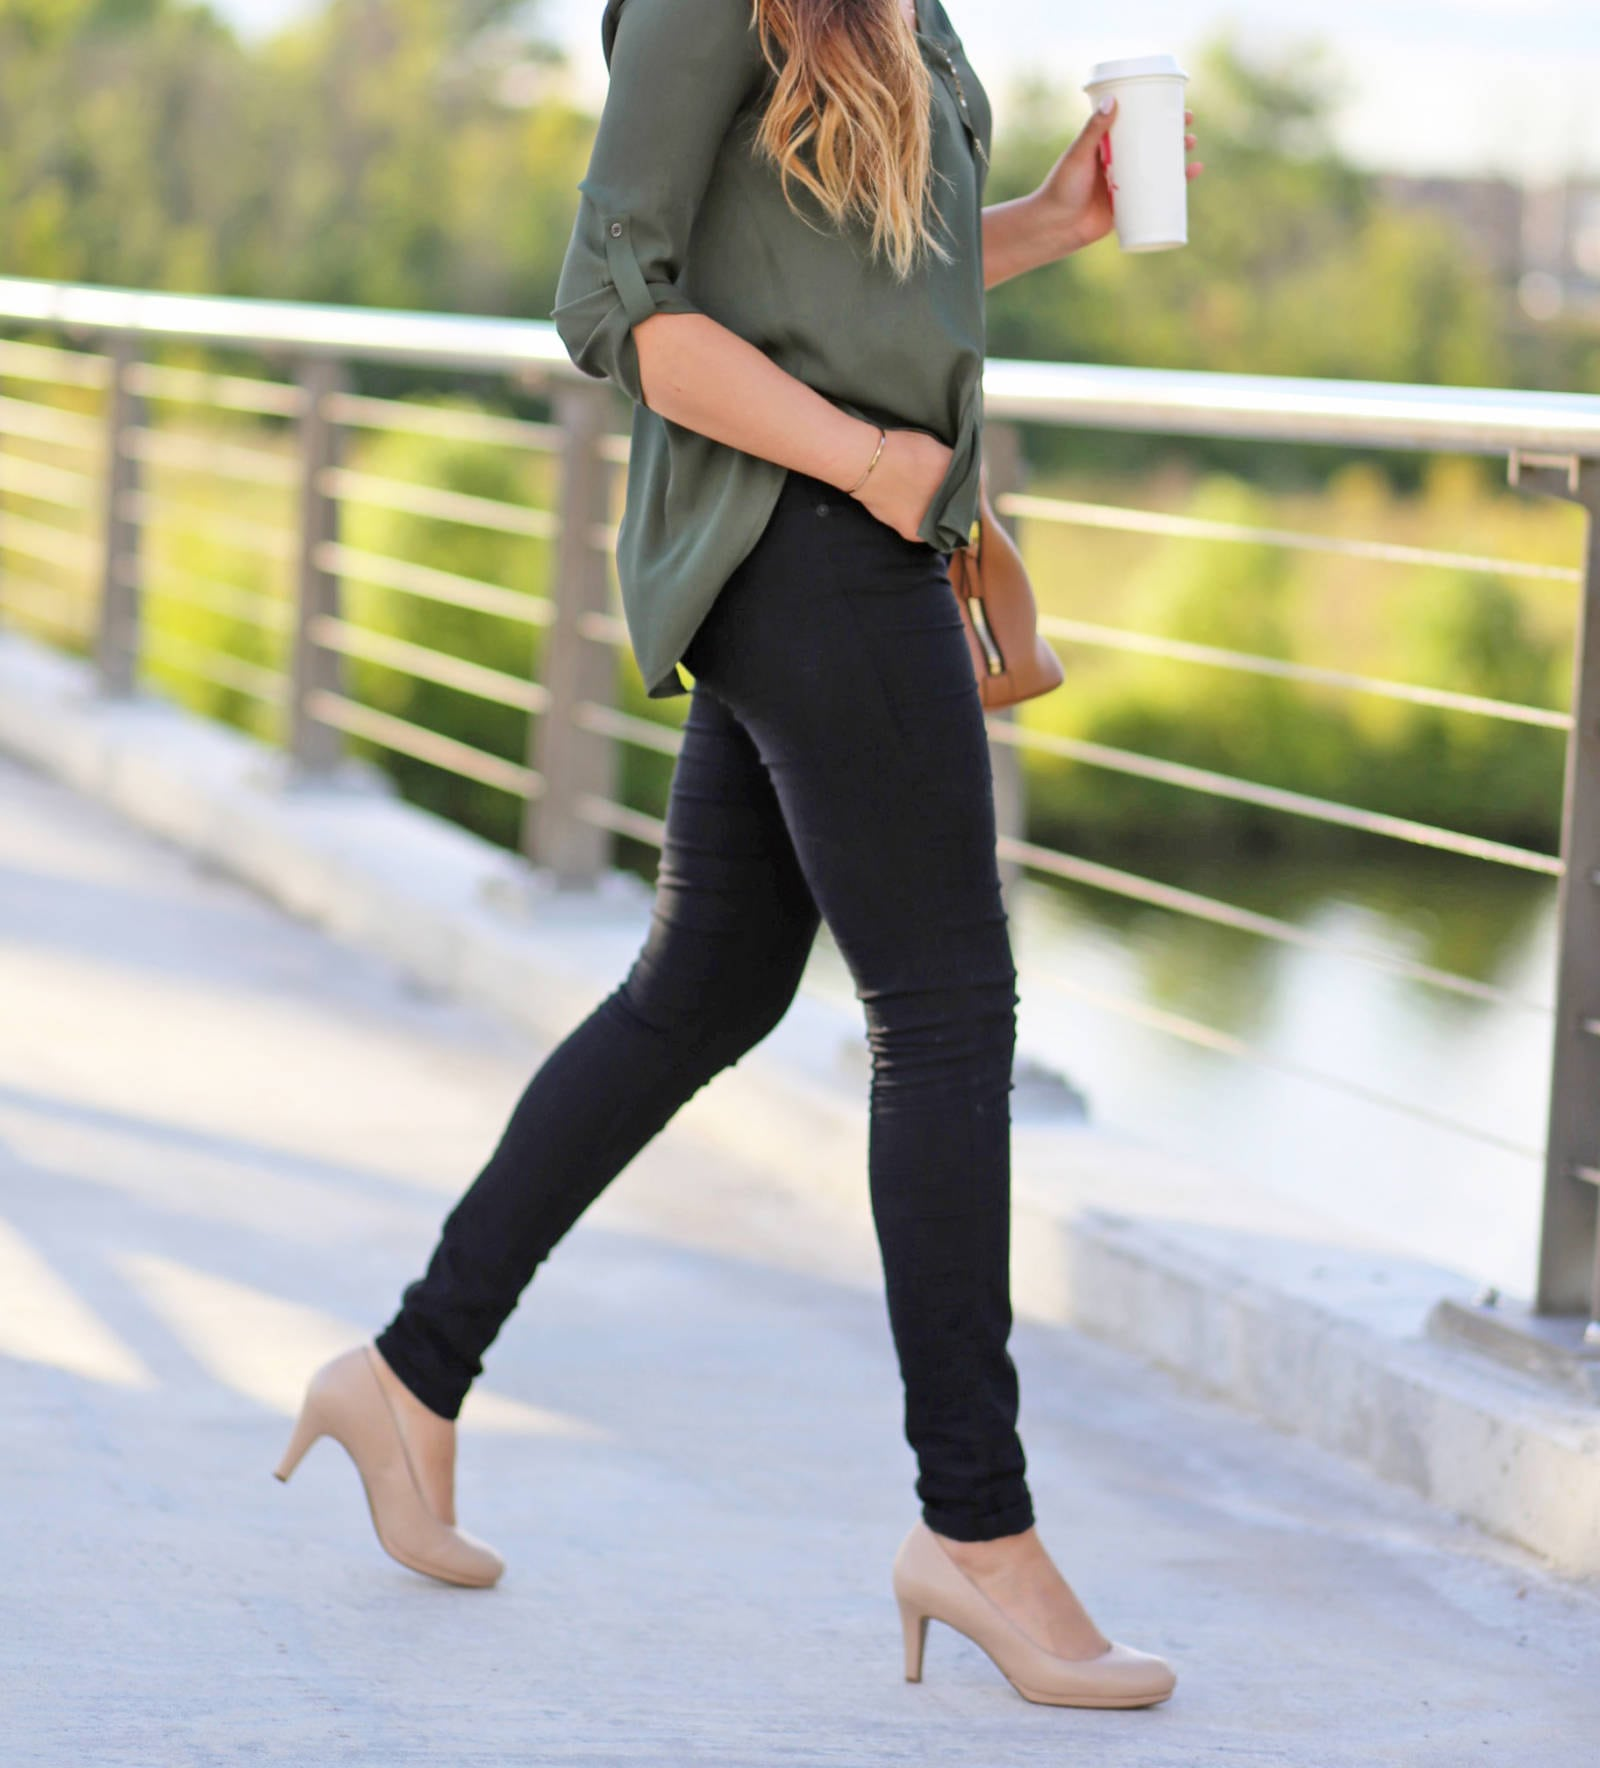 work appropriate heels that are comfortable | work heels | work outfit | Mash Elle beauty blogger